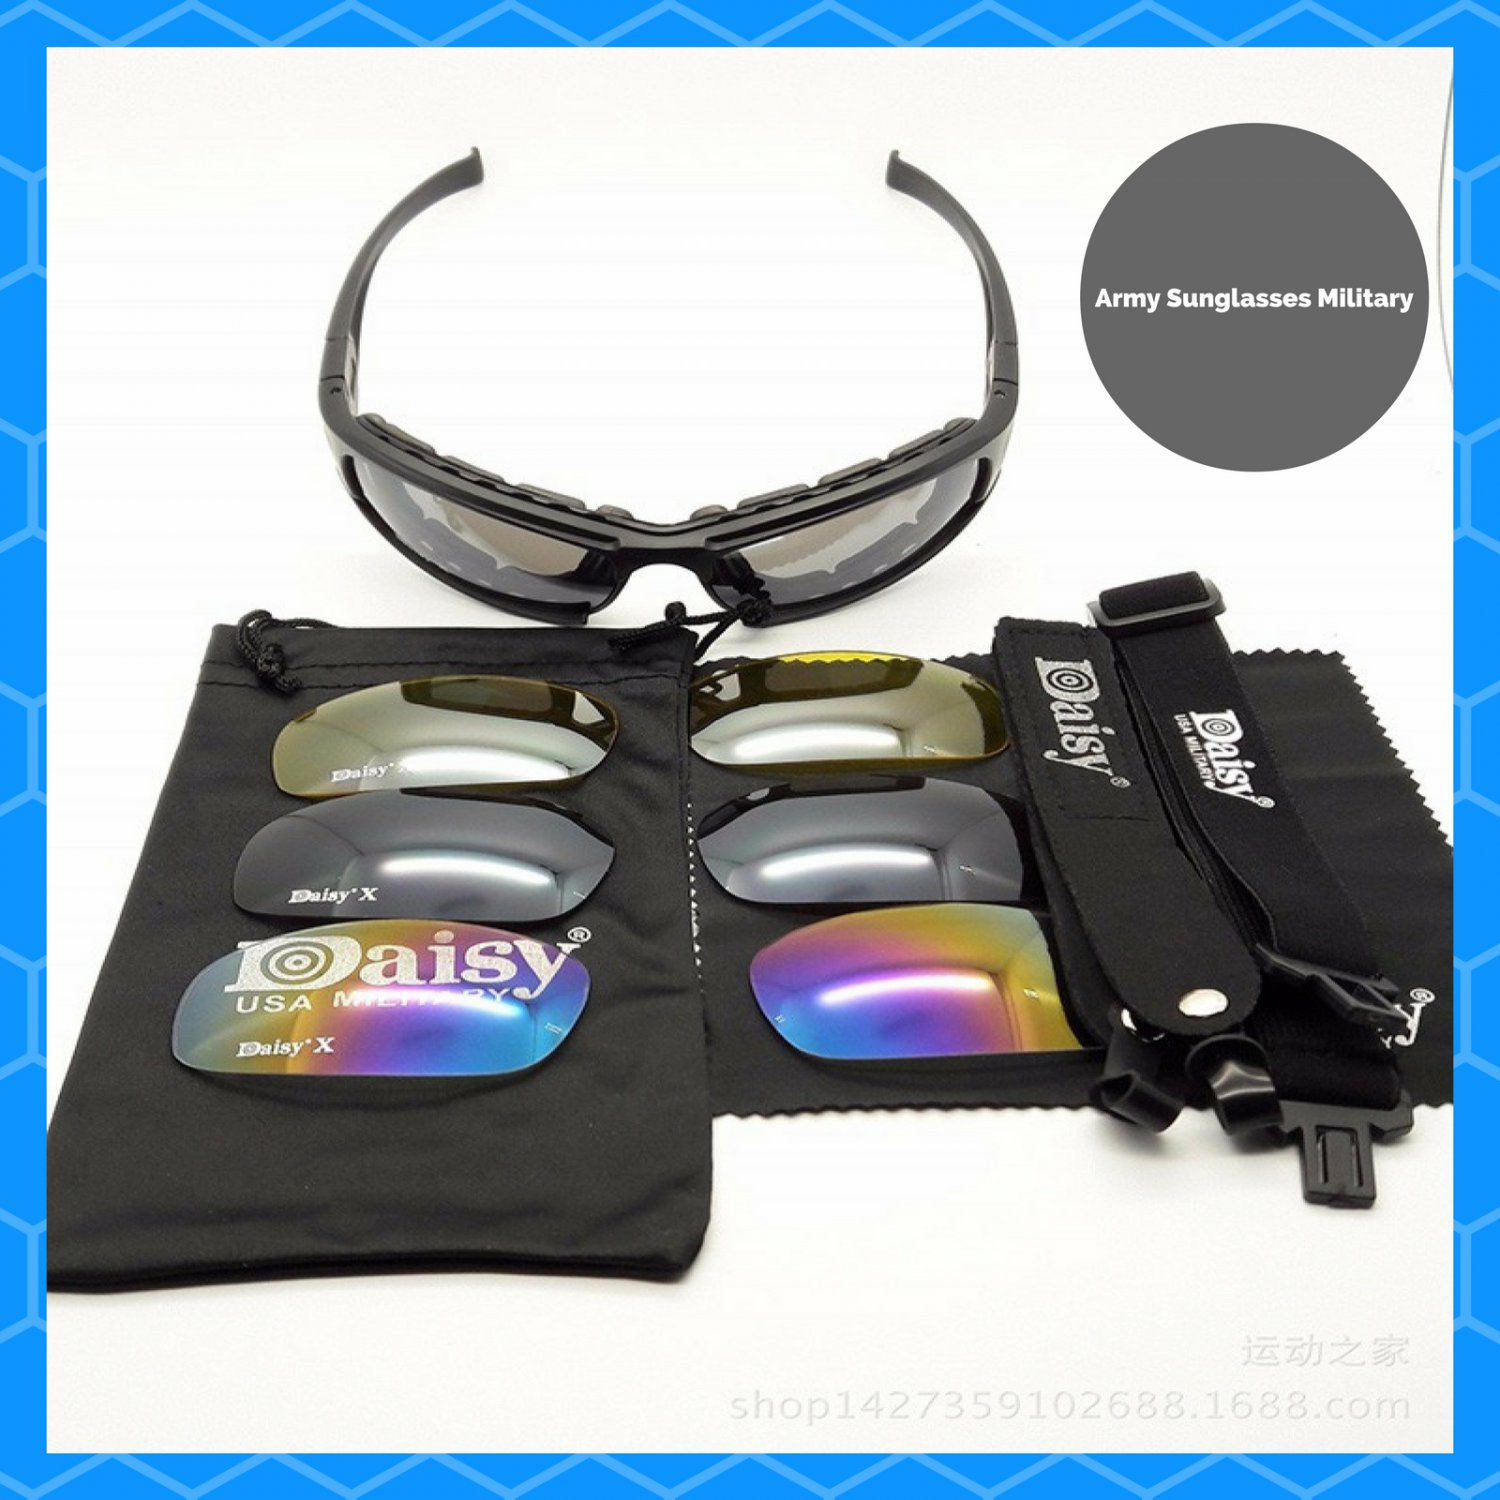 0d33eab7256 Daisy X7 Military Tactical Goggles Motorcycle Riding Glasses Sunglasses  Eyewear